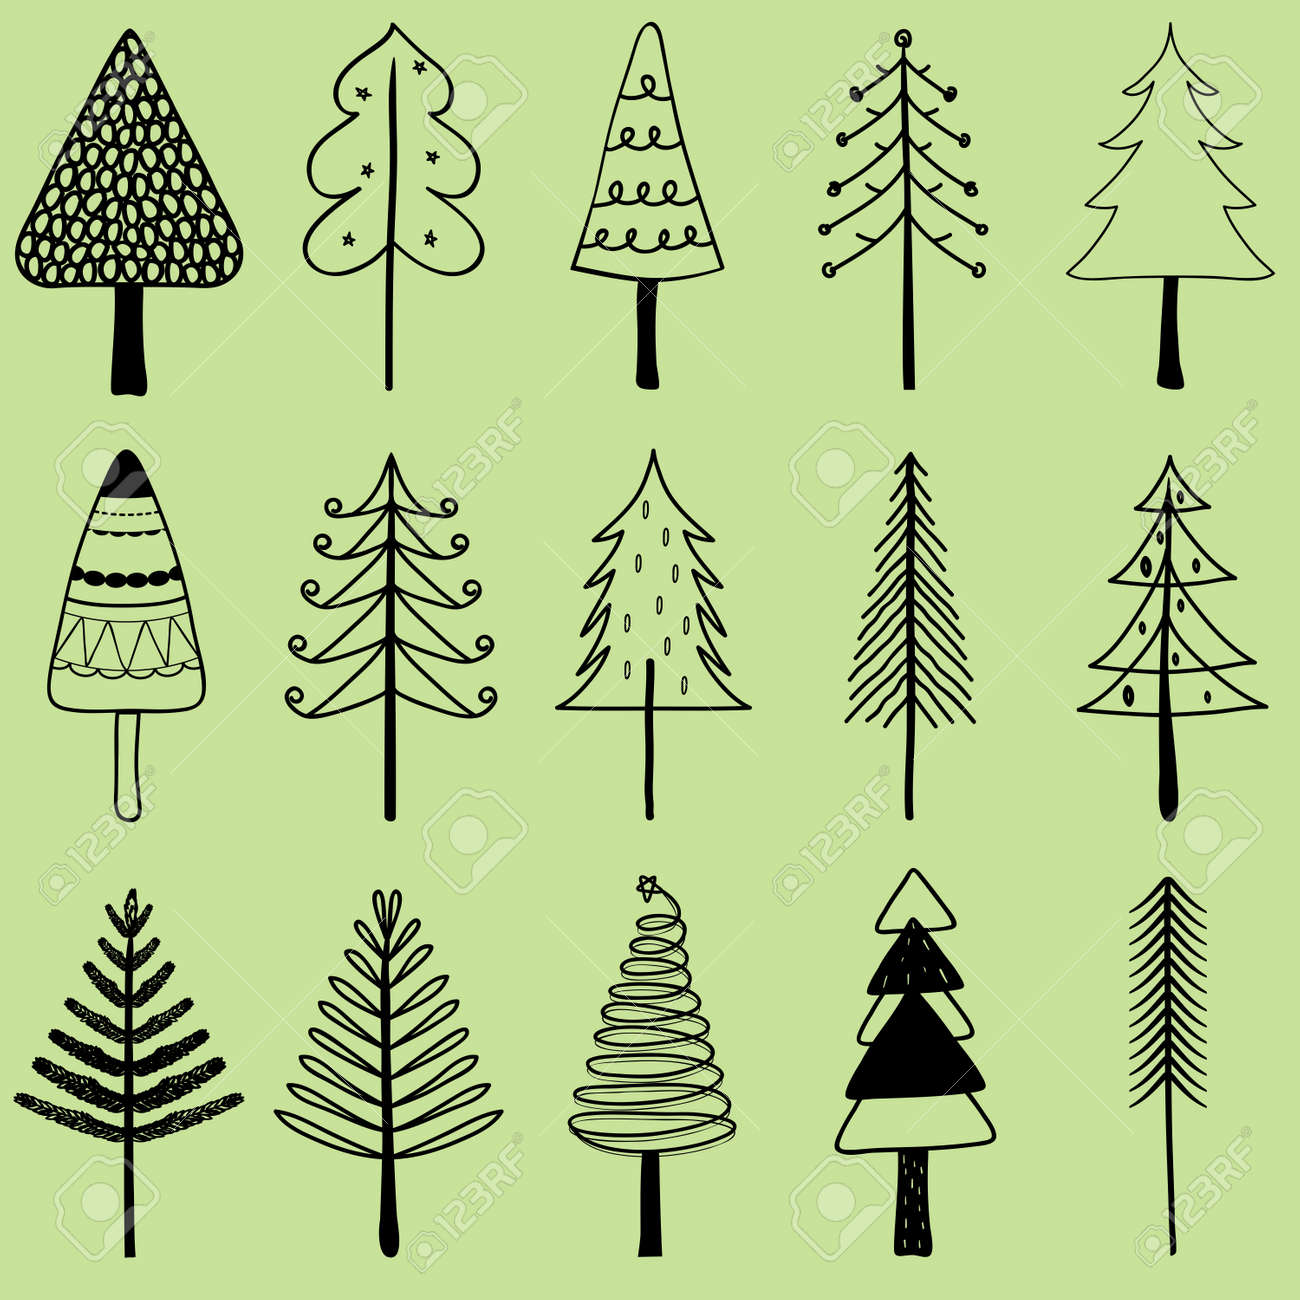 Vector illustration of simple hand drawn Christmas tree, set..